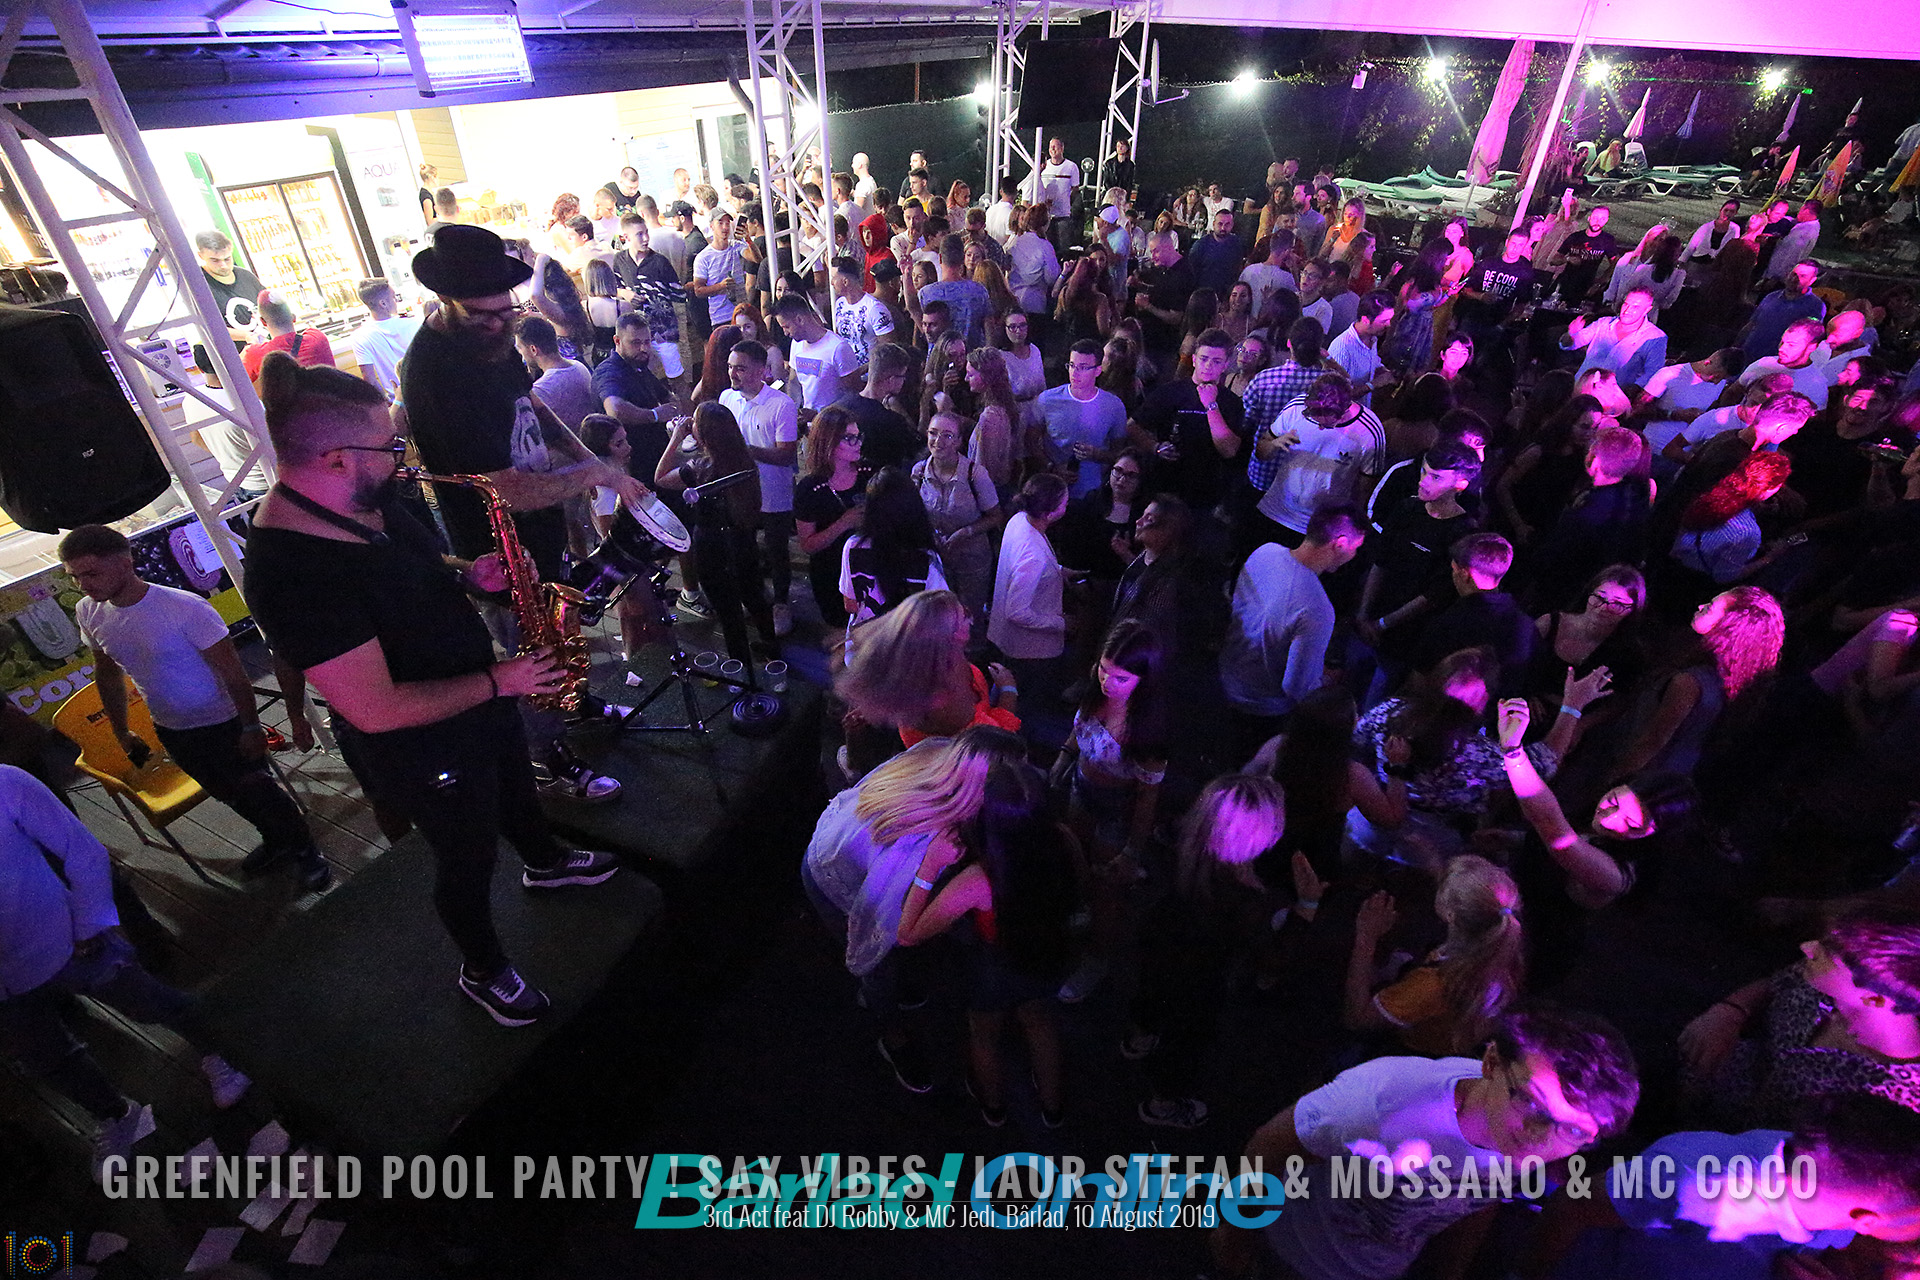 Bârlad Online Photo Gallery - Greenfield Pool Party ! Sax